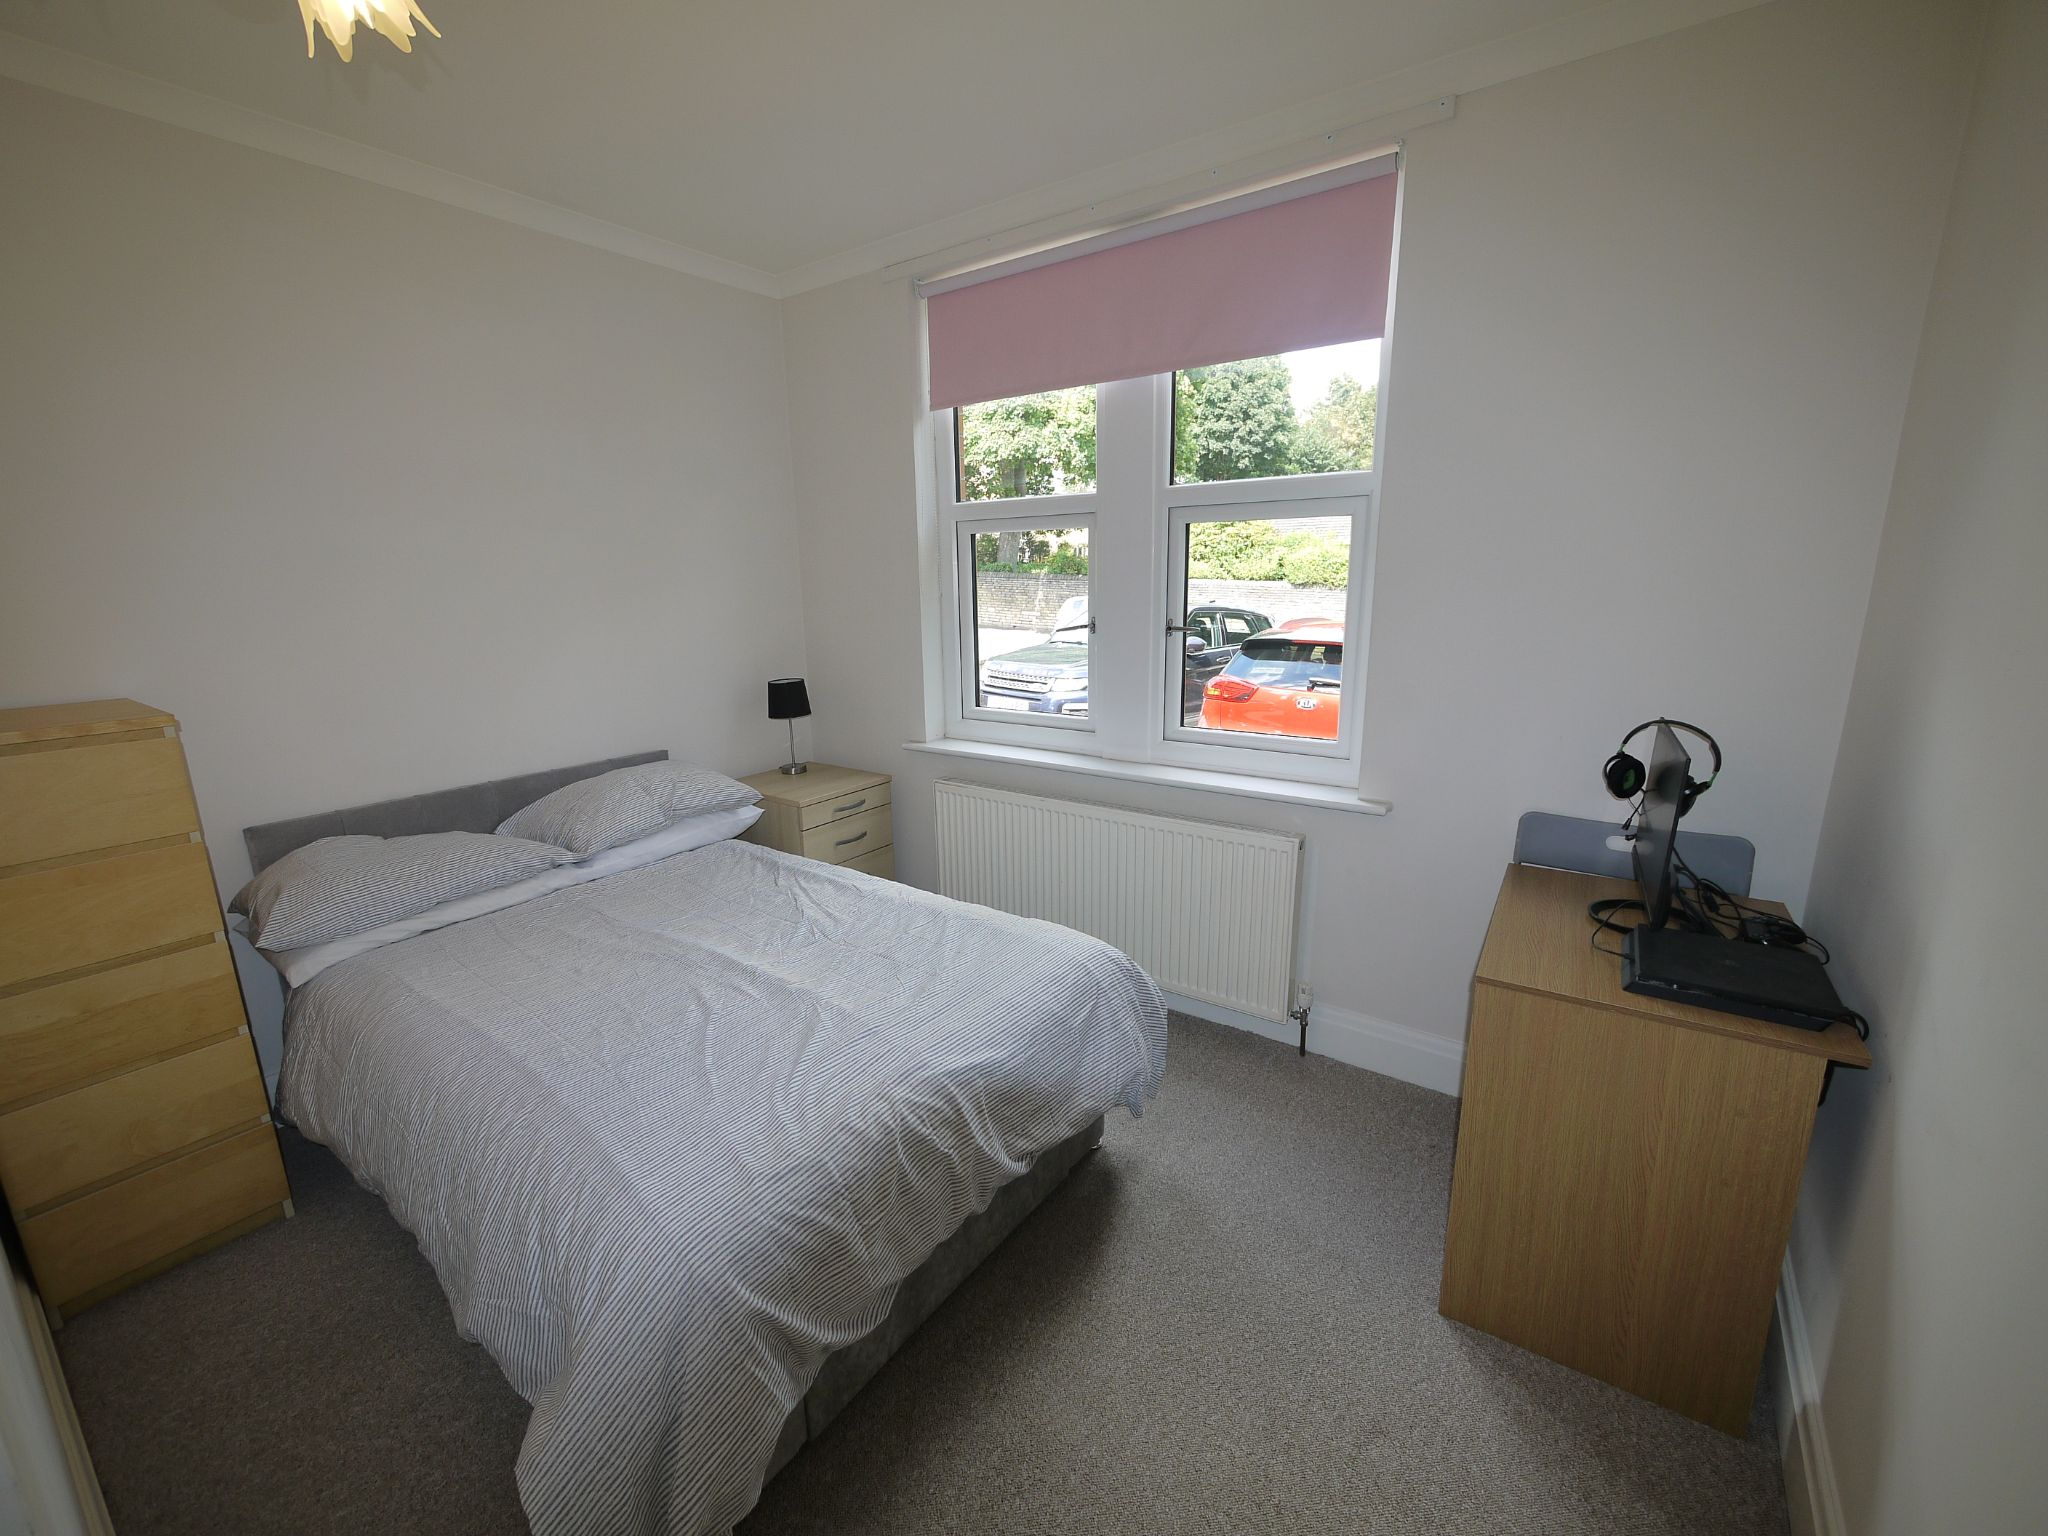 4 bedroom detached house SSTC in Halifax - Photograph 8.